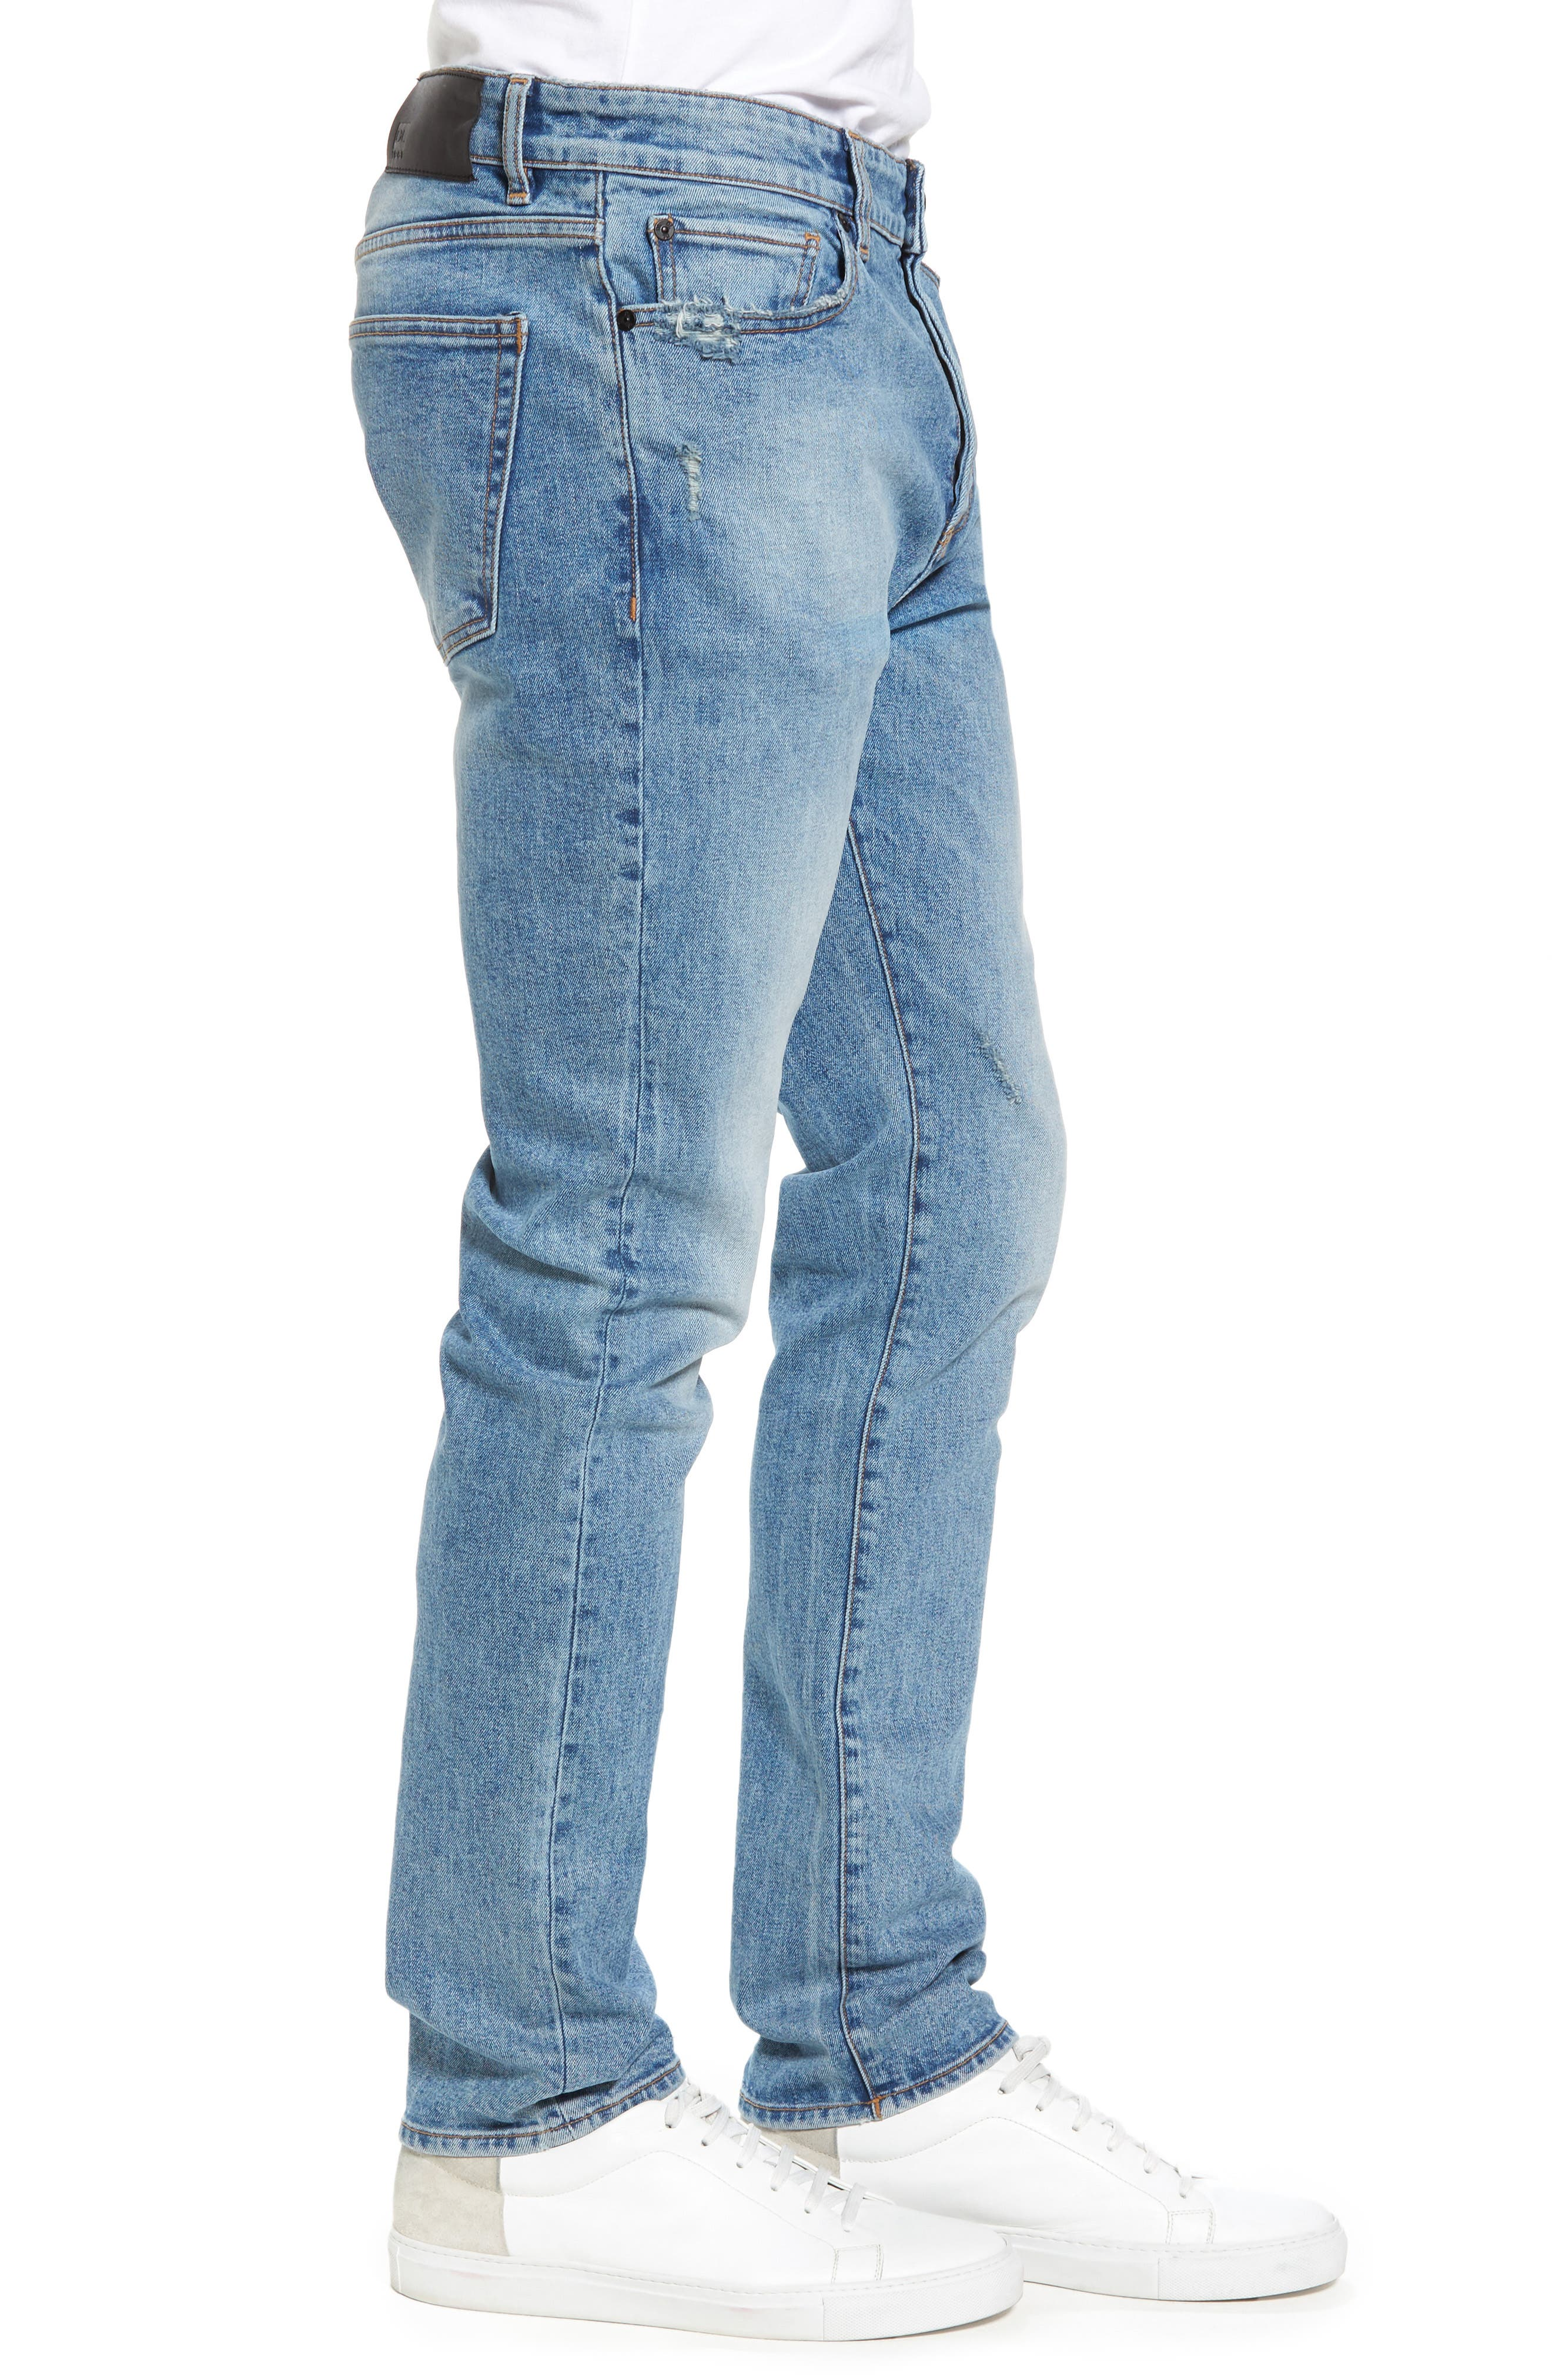 Cooper Slouchy Skinny Jeans,                             Alternate thumbnail 3, color,                             Breathe